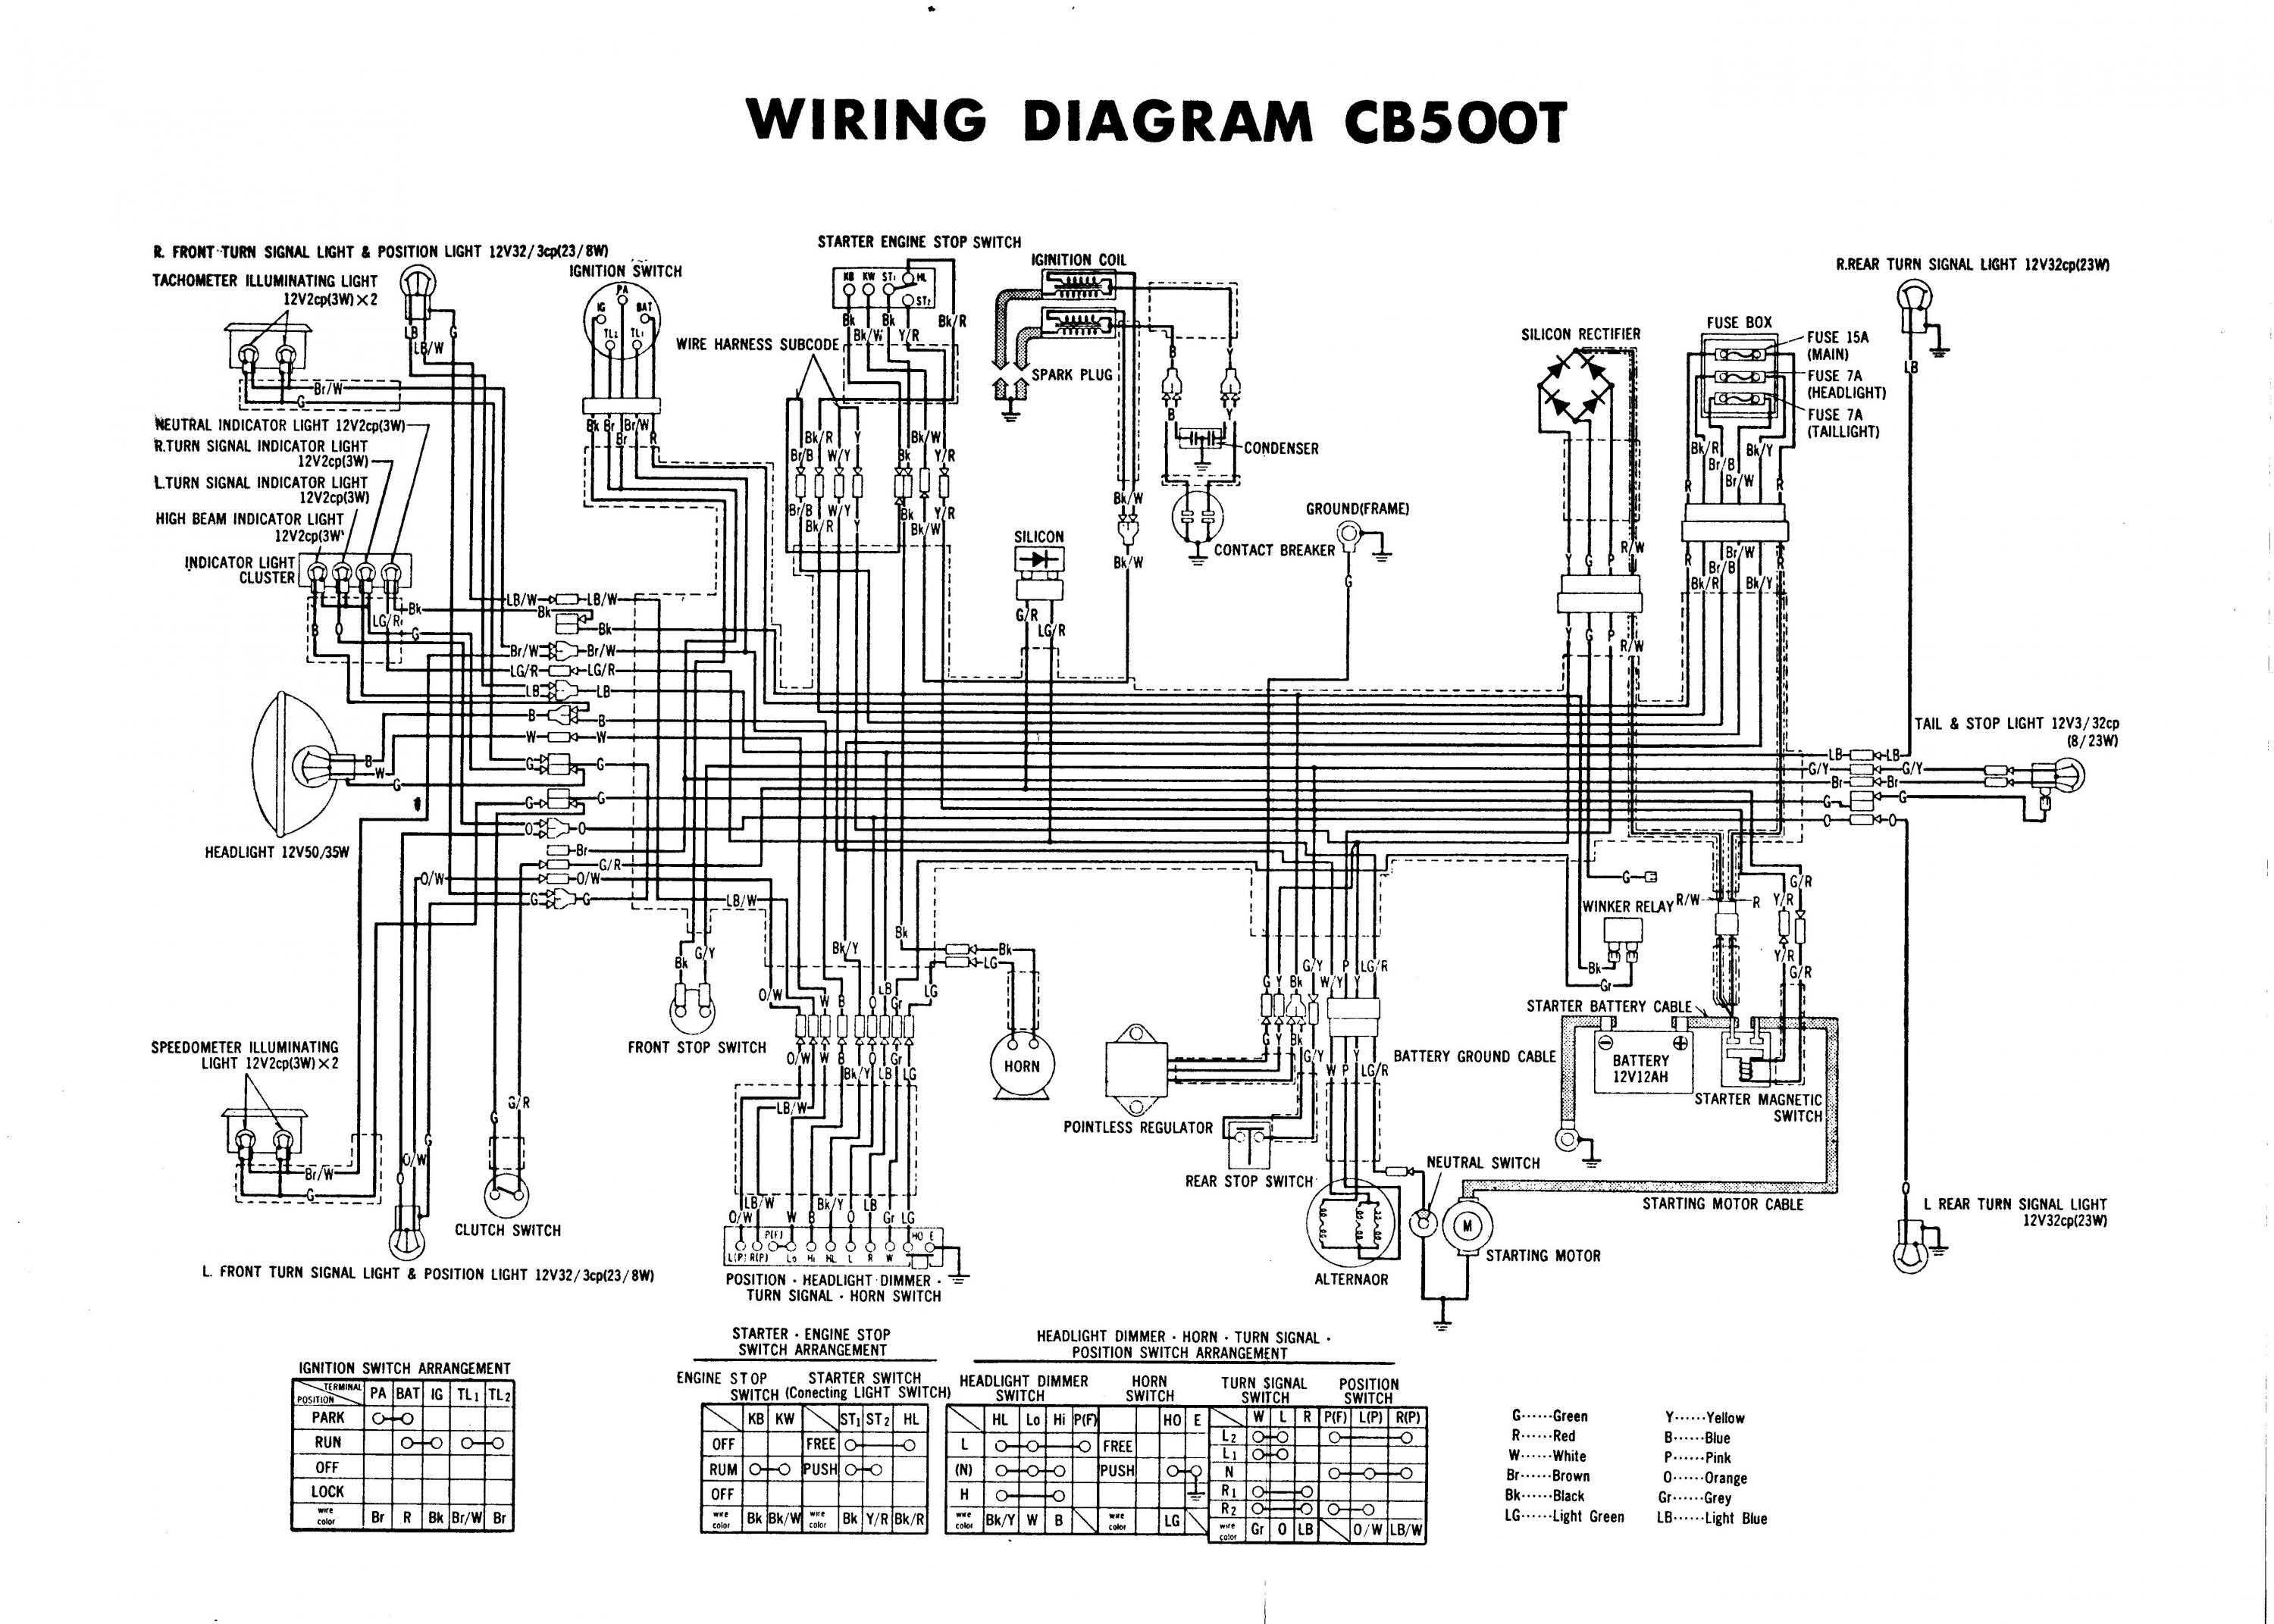 Need Help Wiring CB500T With K&S Switches-cb500t-wiring-crop.jpg